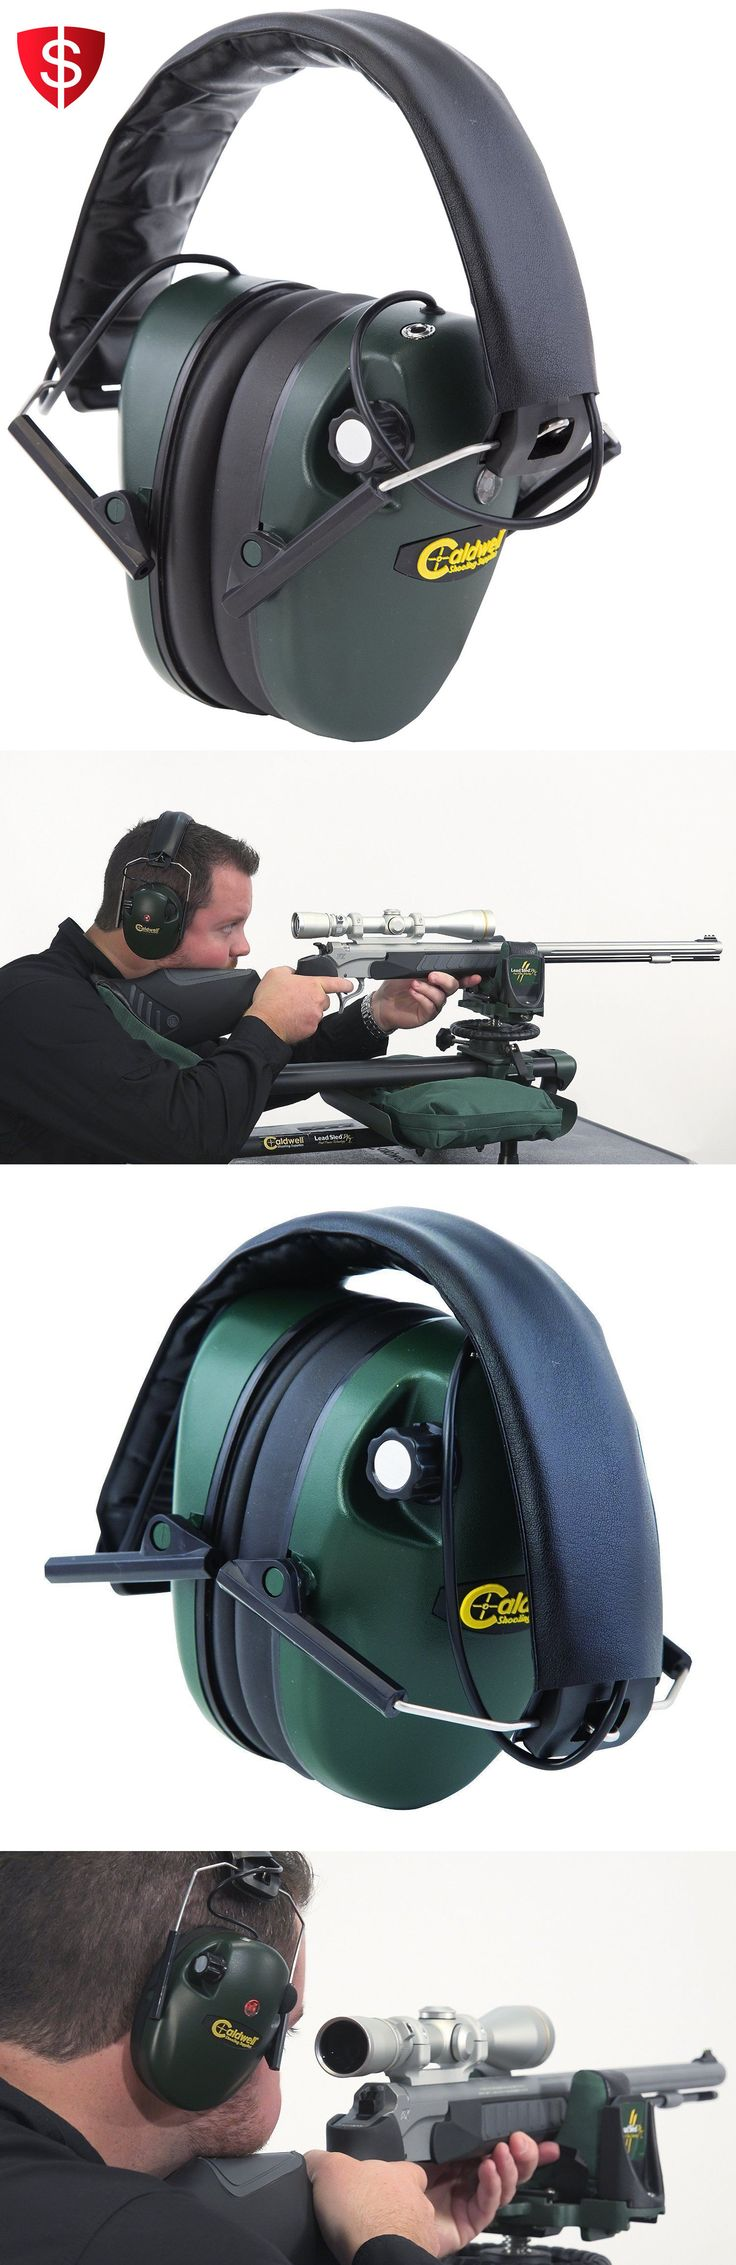 Hearing Protection 73942: Caldwell Electronic Ear Muffs Hearing Protection Impact Sport Earmuffs Shooting -> BUY IT NOW ONLY: $32.5 on eBay!